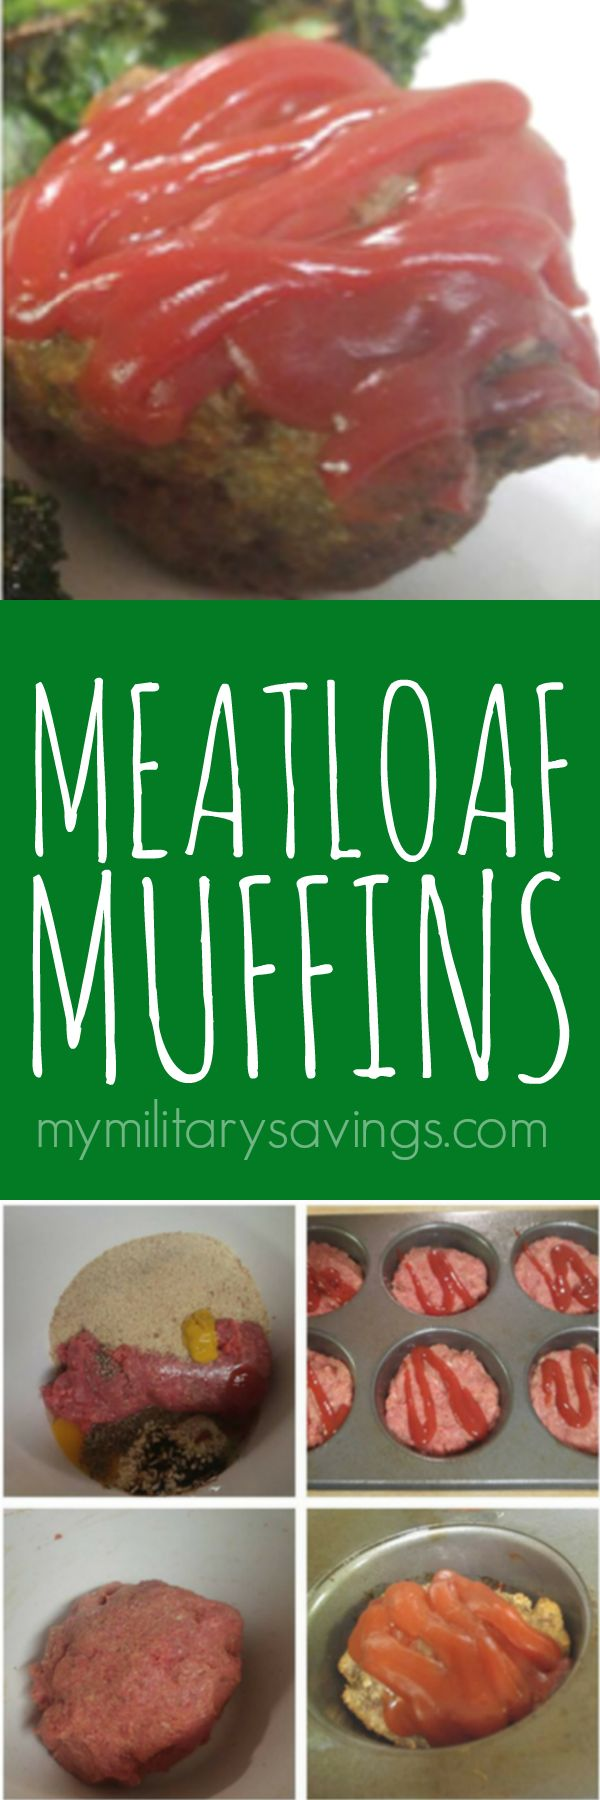 Make these easy meatloaf muffins for for dinner on those crazy school and work days!